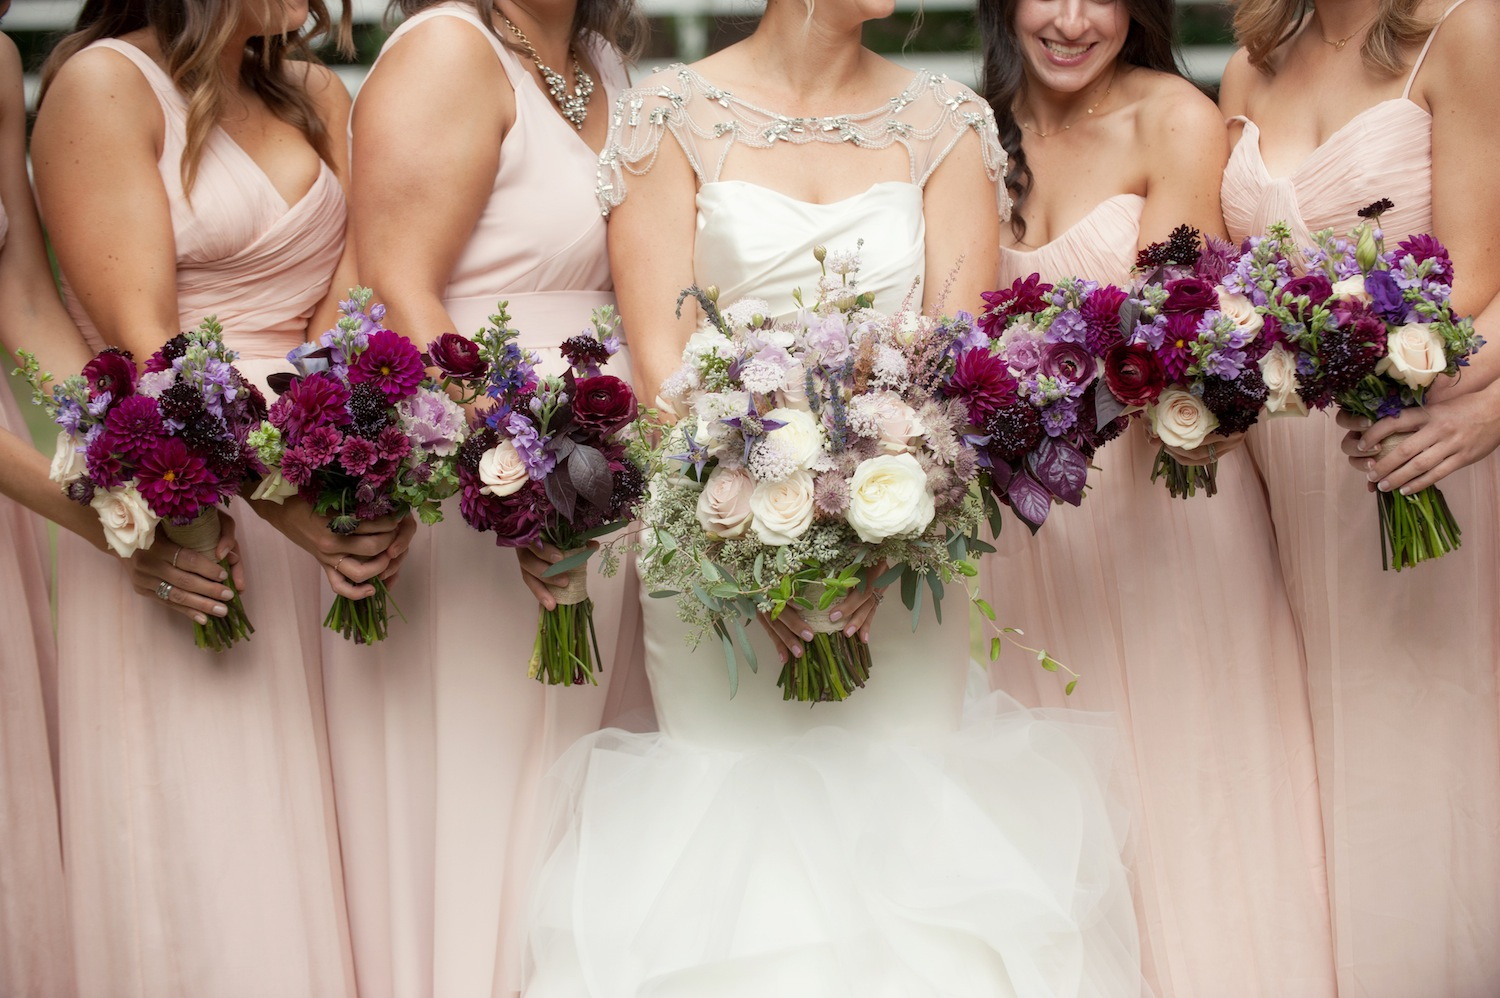 Wedding Bouquets: Bridesmaid Bouquet Ideas